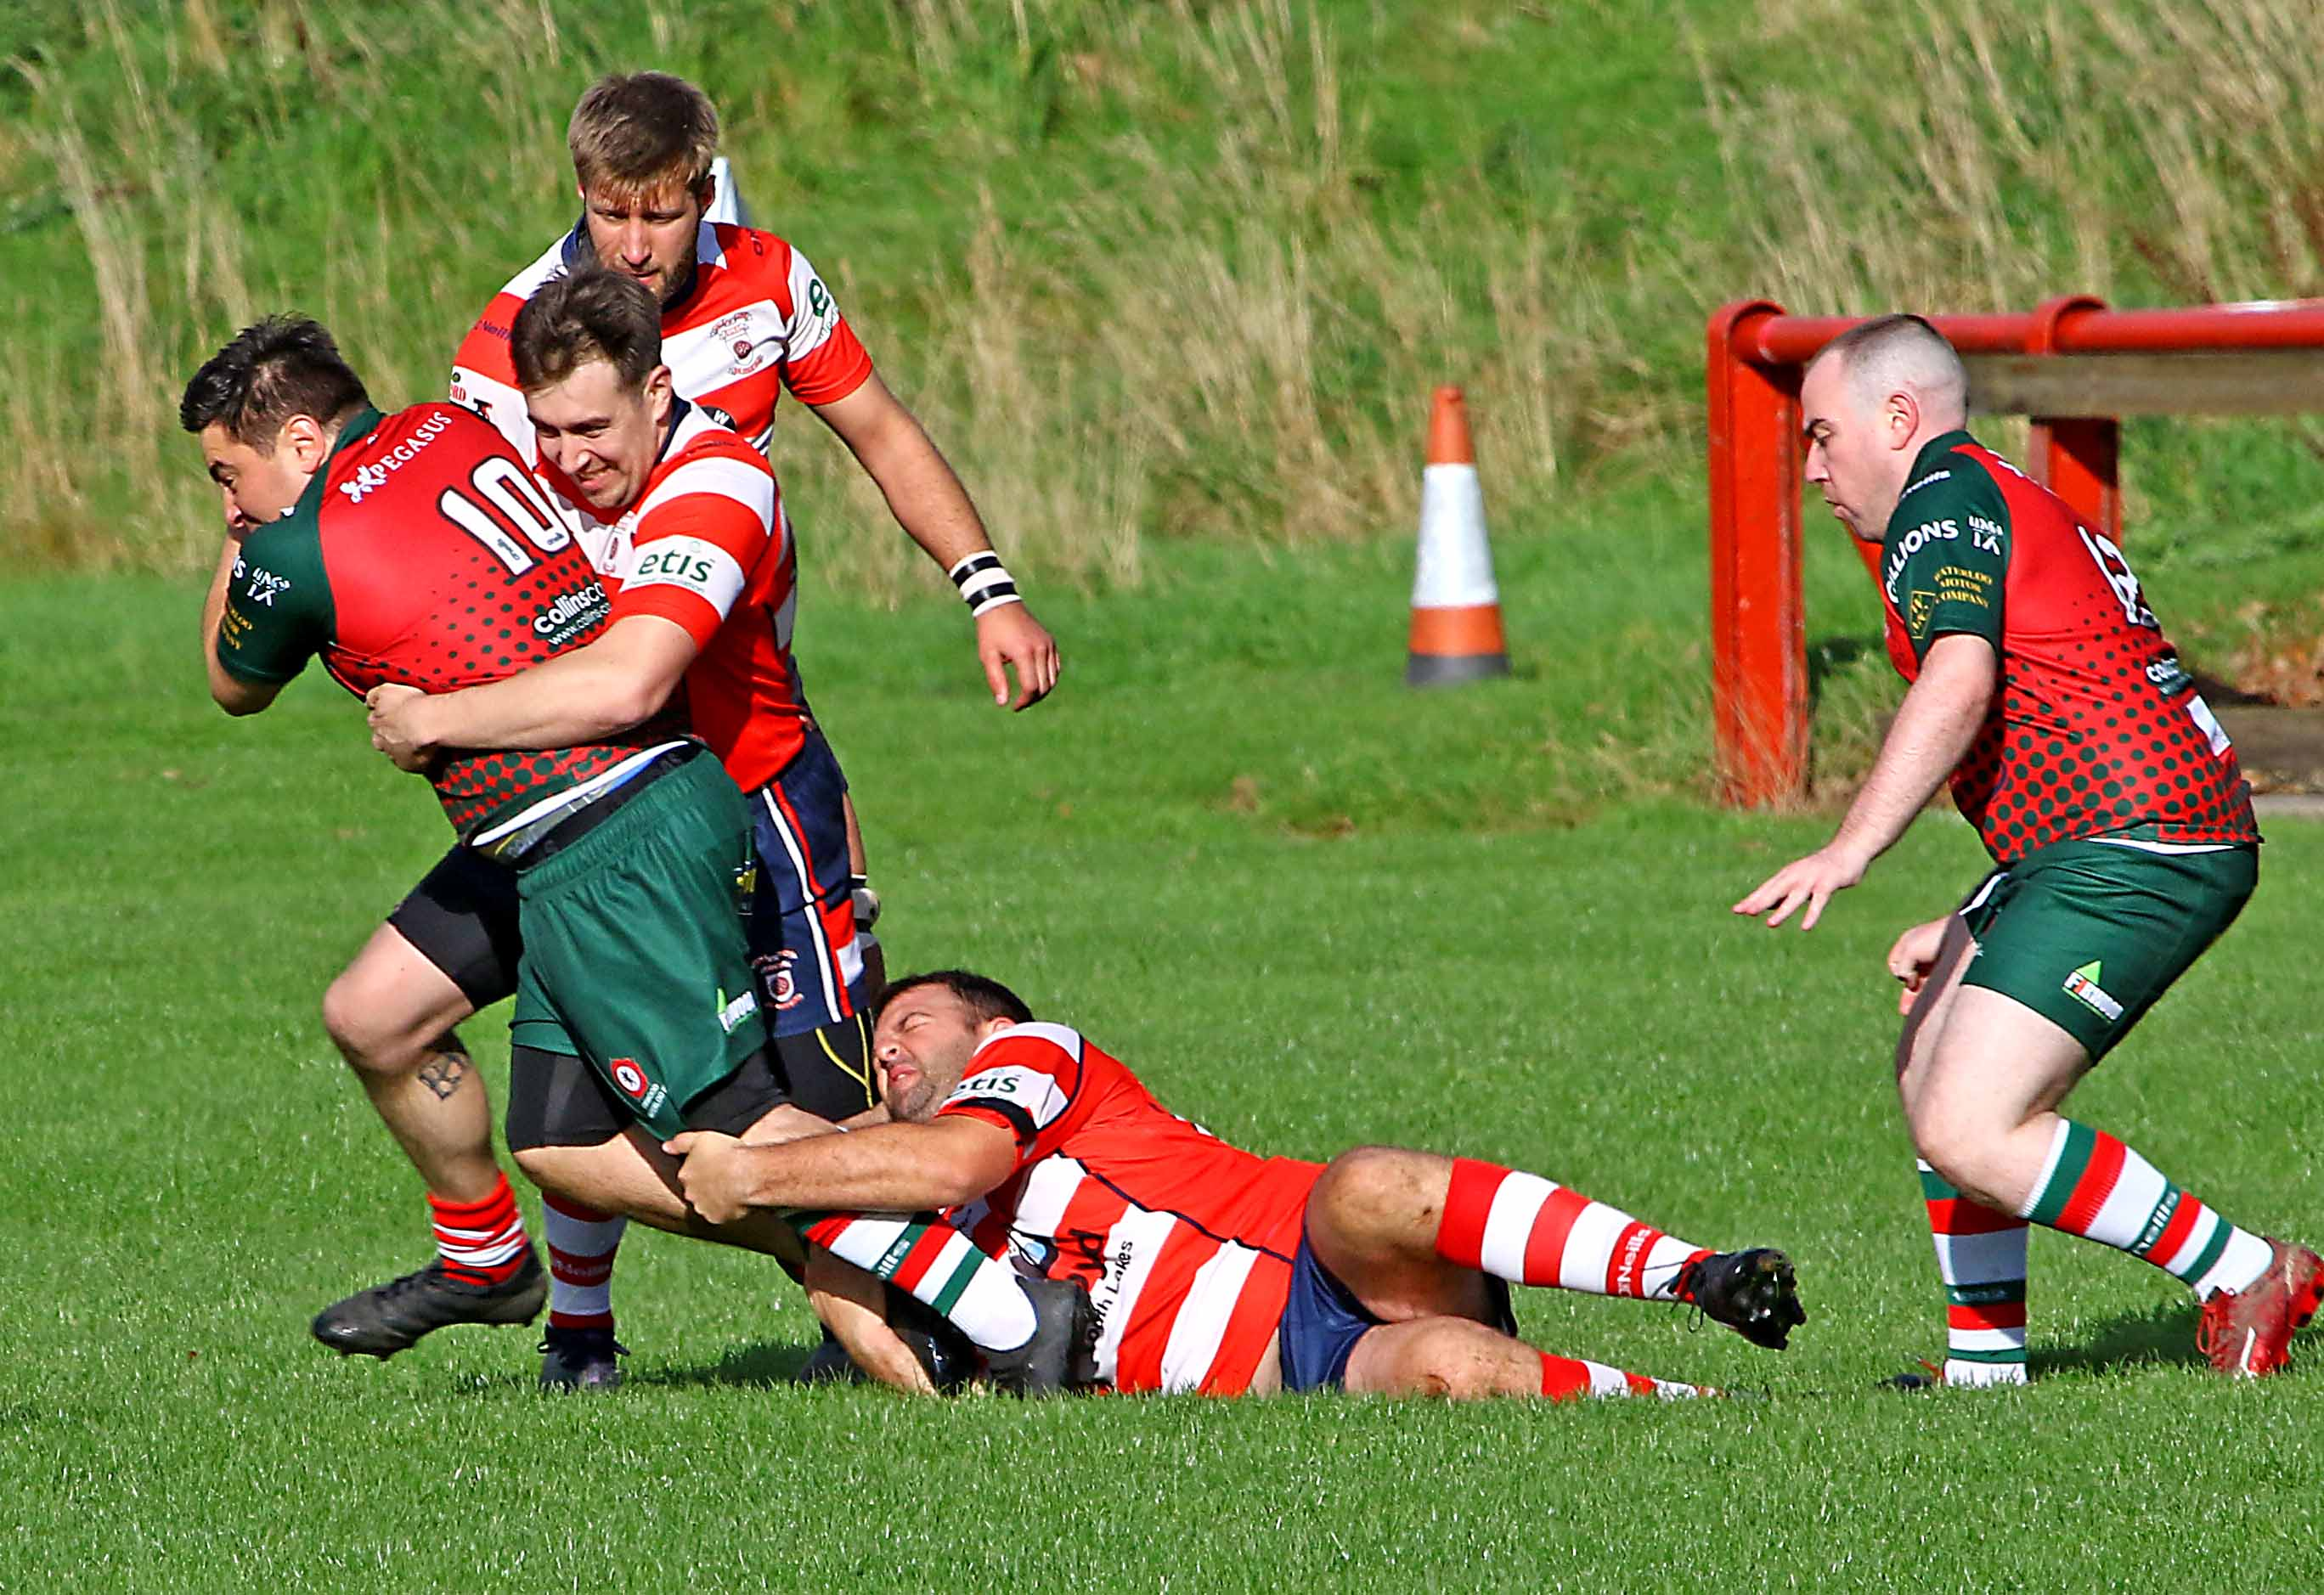 Vale of Lune 2nd XV 29pts v 15pts Firwoodwaterloo 2nd Xv Pictures by Vales Chief Photographer Tony North